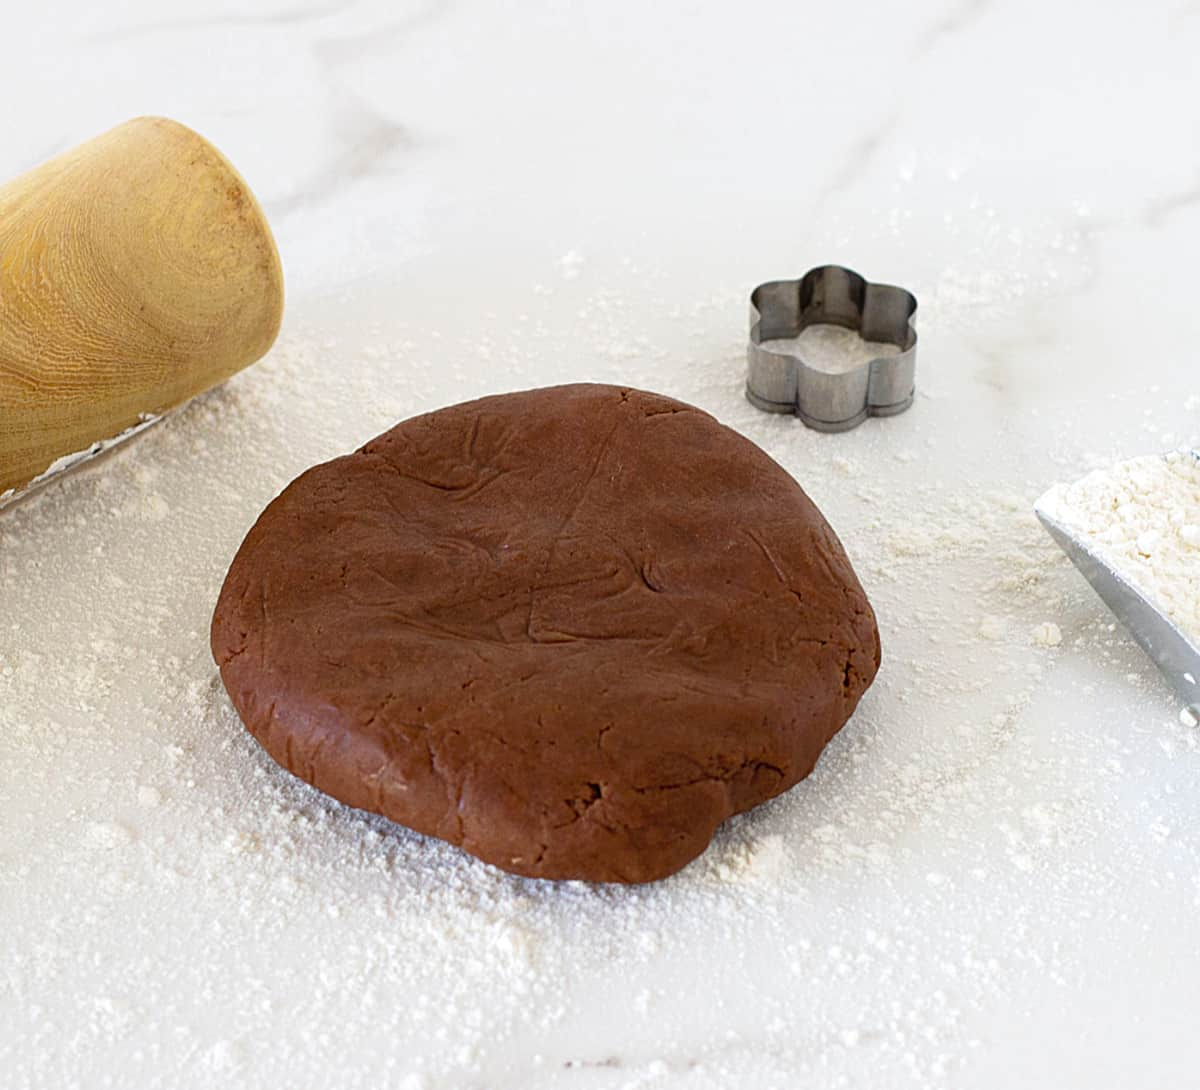 Chocolate pie dough round on white counter, flour and rolling pin